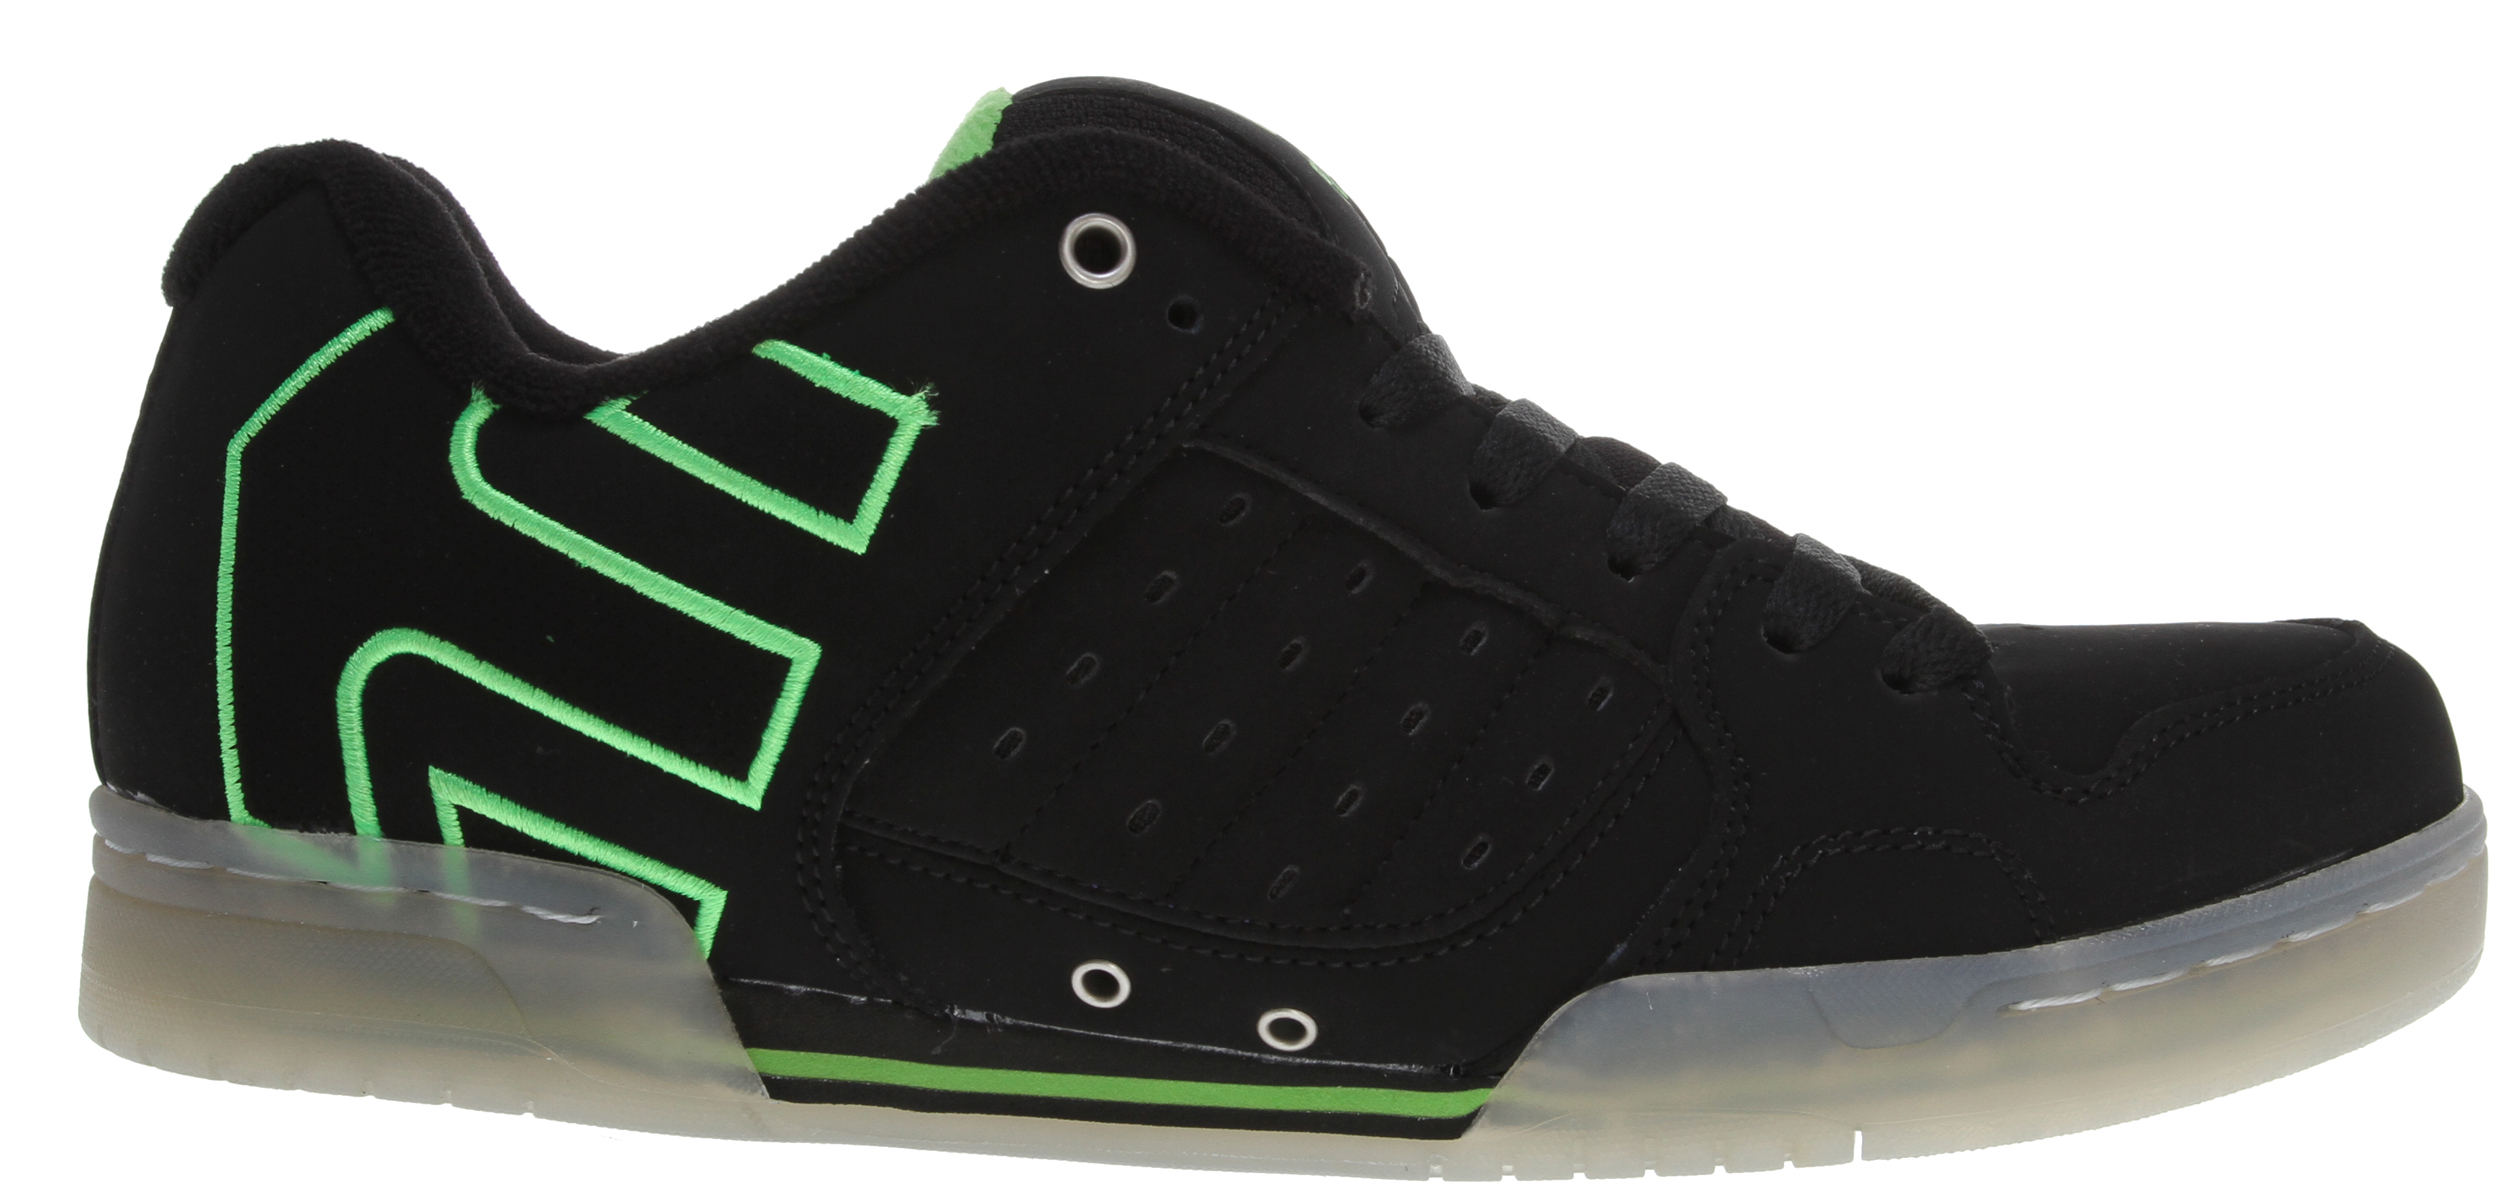 Skateboard Etnies Piston Skate Shoes provide long lasting support. With a padded skate shoe tongue and collar, you'll skate in comfort. These Etnies Piston Skate Shoes are made strong as well as safe for your skating needs. Step out in style. These skate shoes will bring you hours of pleasure in the skating rink. These skate shoes have good padding and support so you can skate in style and comfort.  Trademark etnies Arrow logo    Padded tongue and collar   STI Foam Lite level 1 footbed   300 NBS double cup rubber   Exposed EVA midsole - $41.95